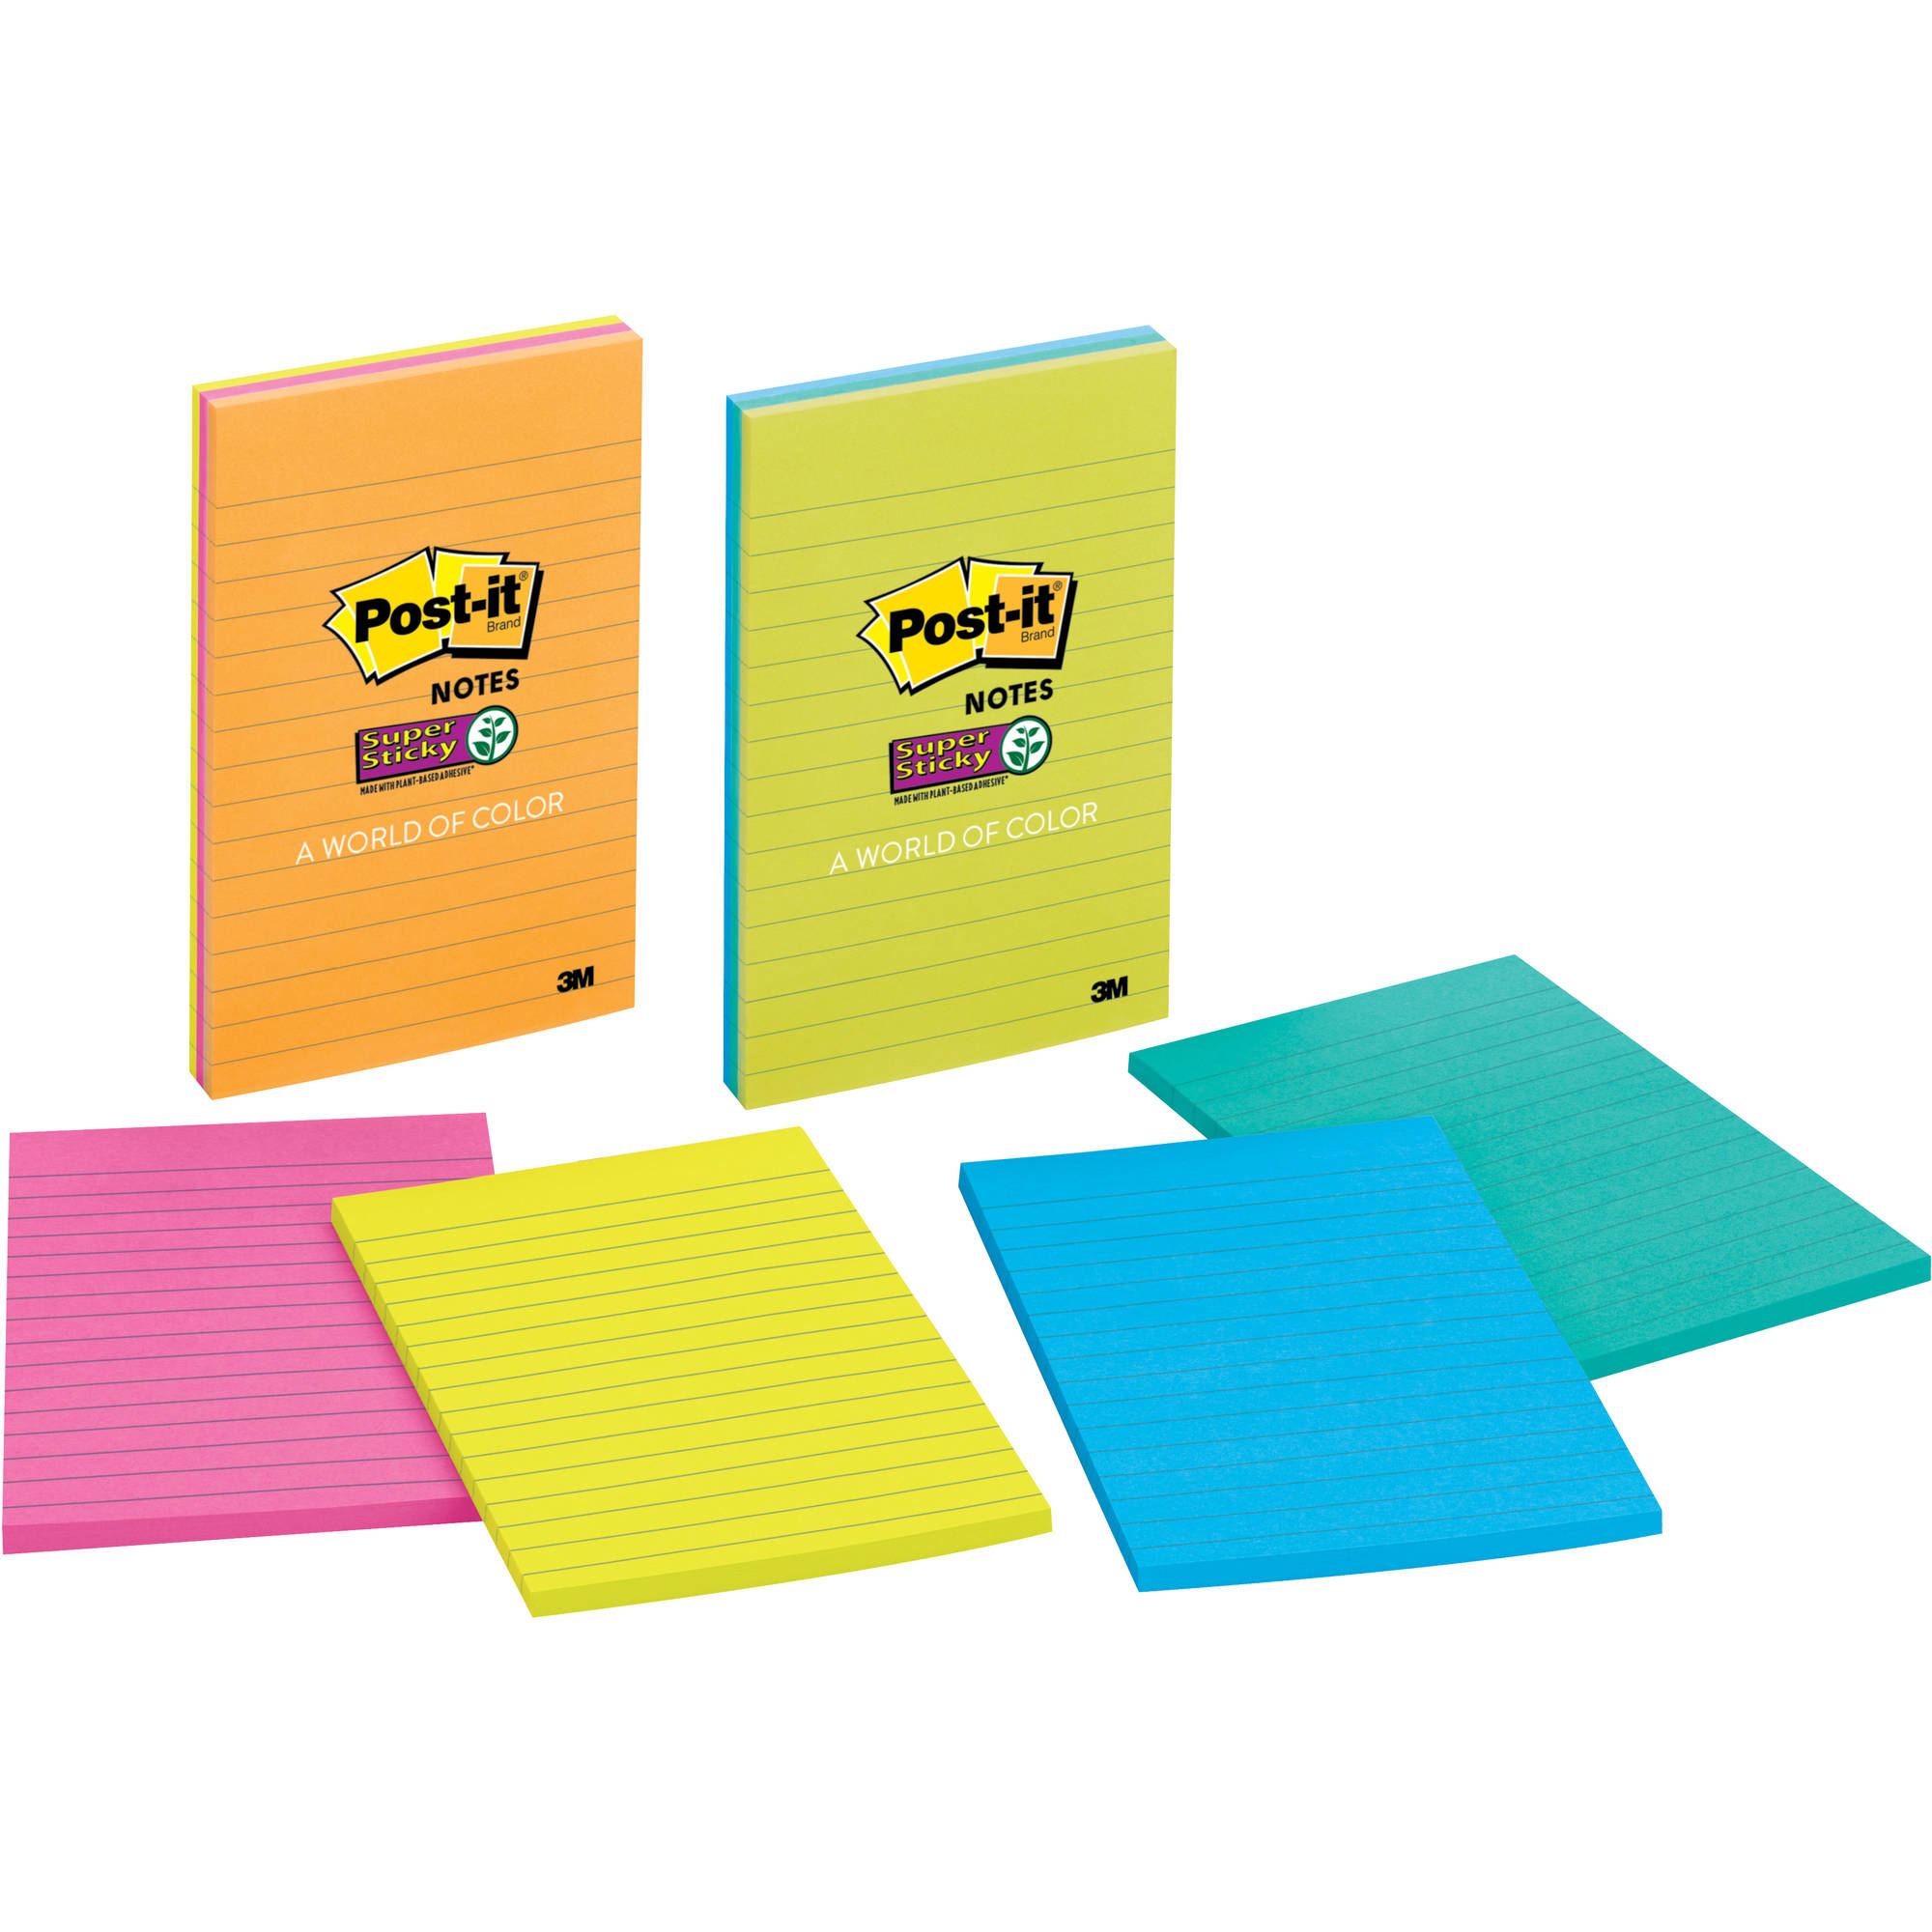 Post-it Super Sticky Lined Notes, 3 Pack, 4 in x 6 in, World of Color Collection